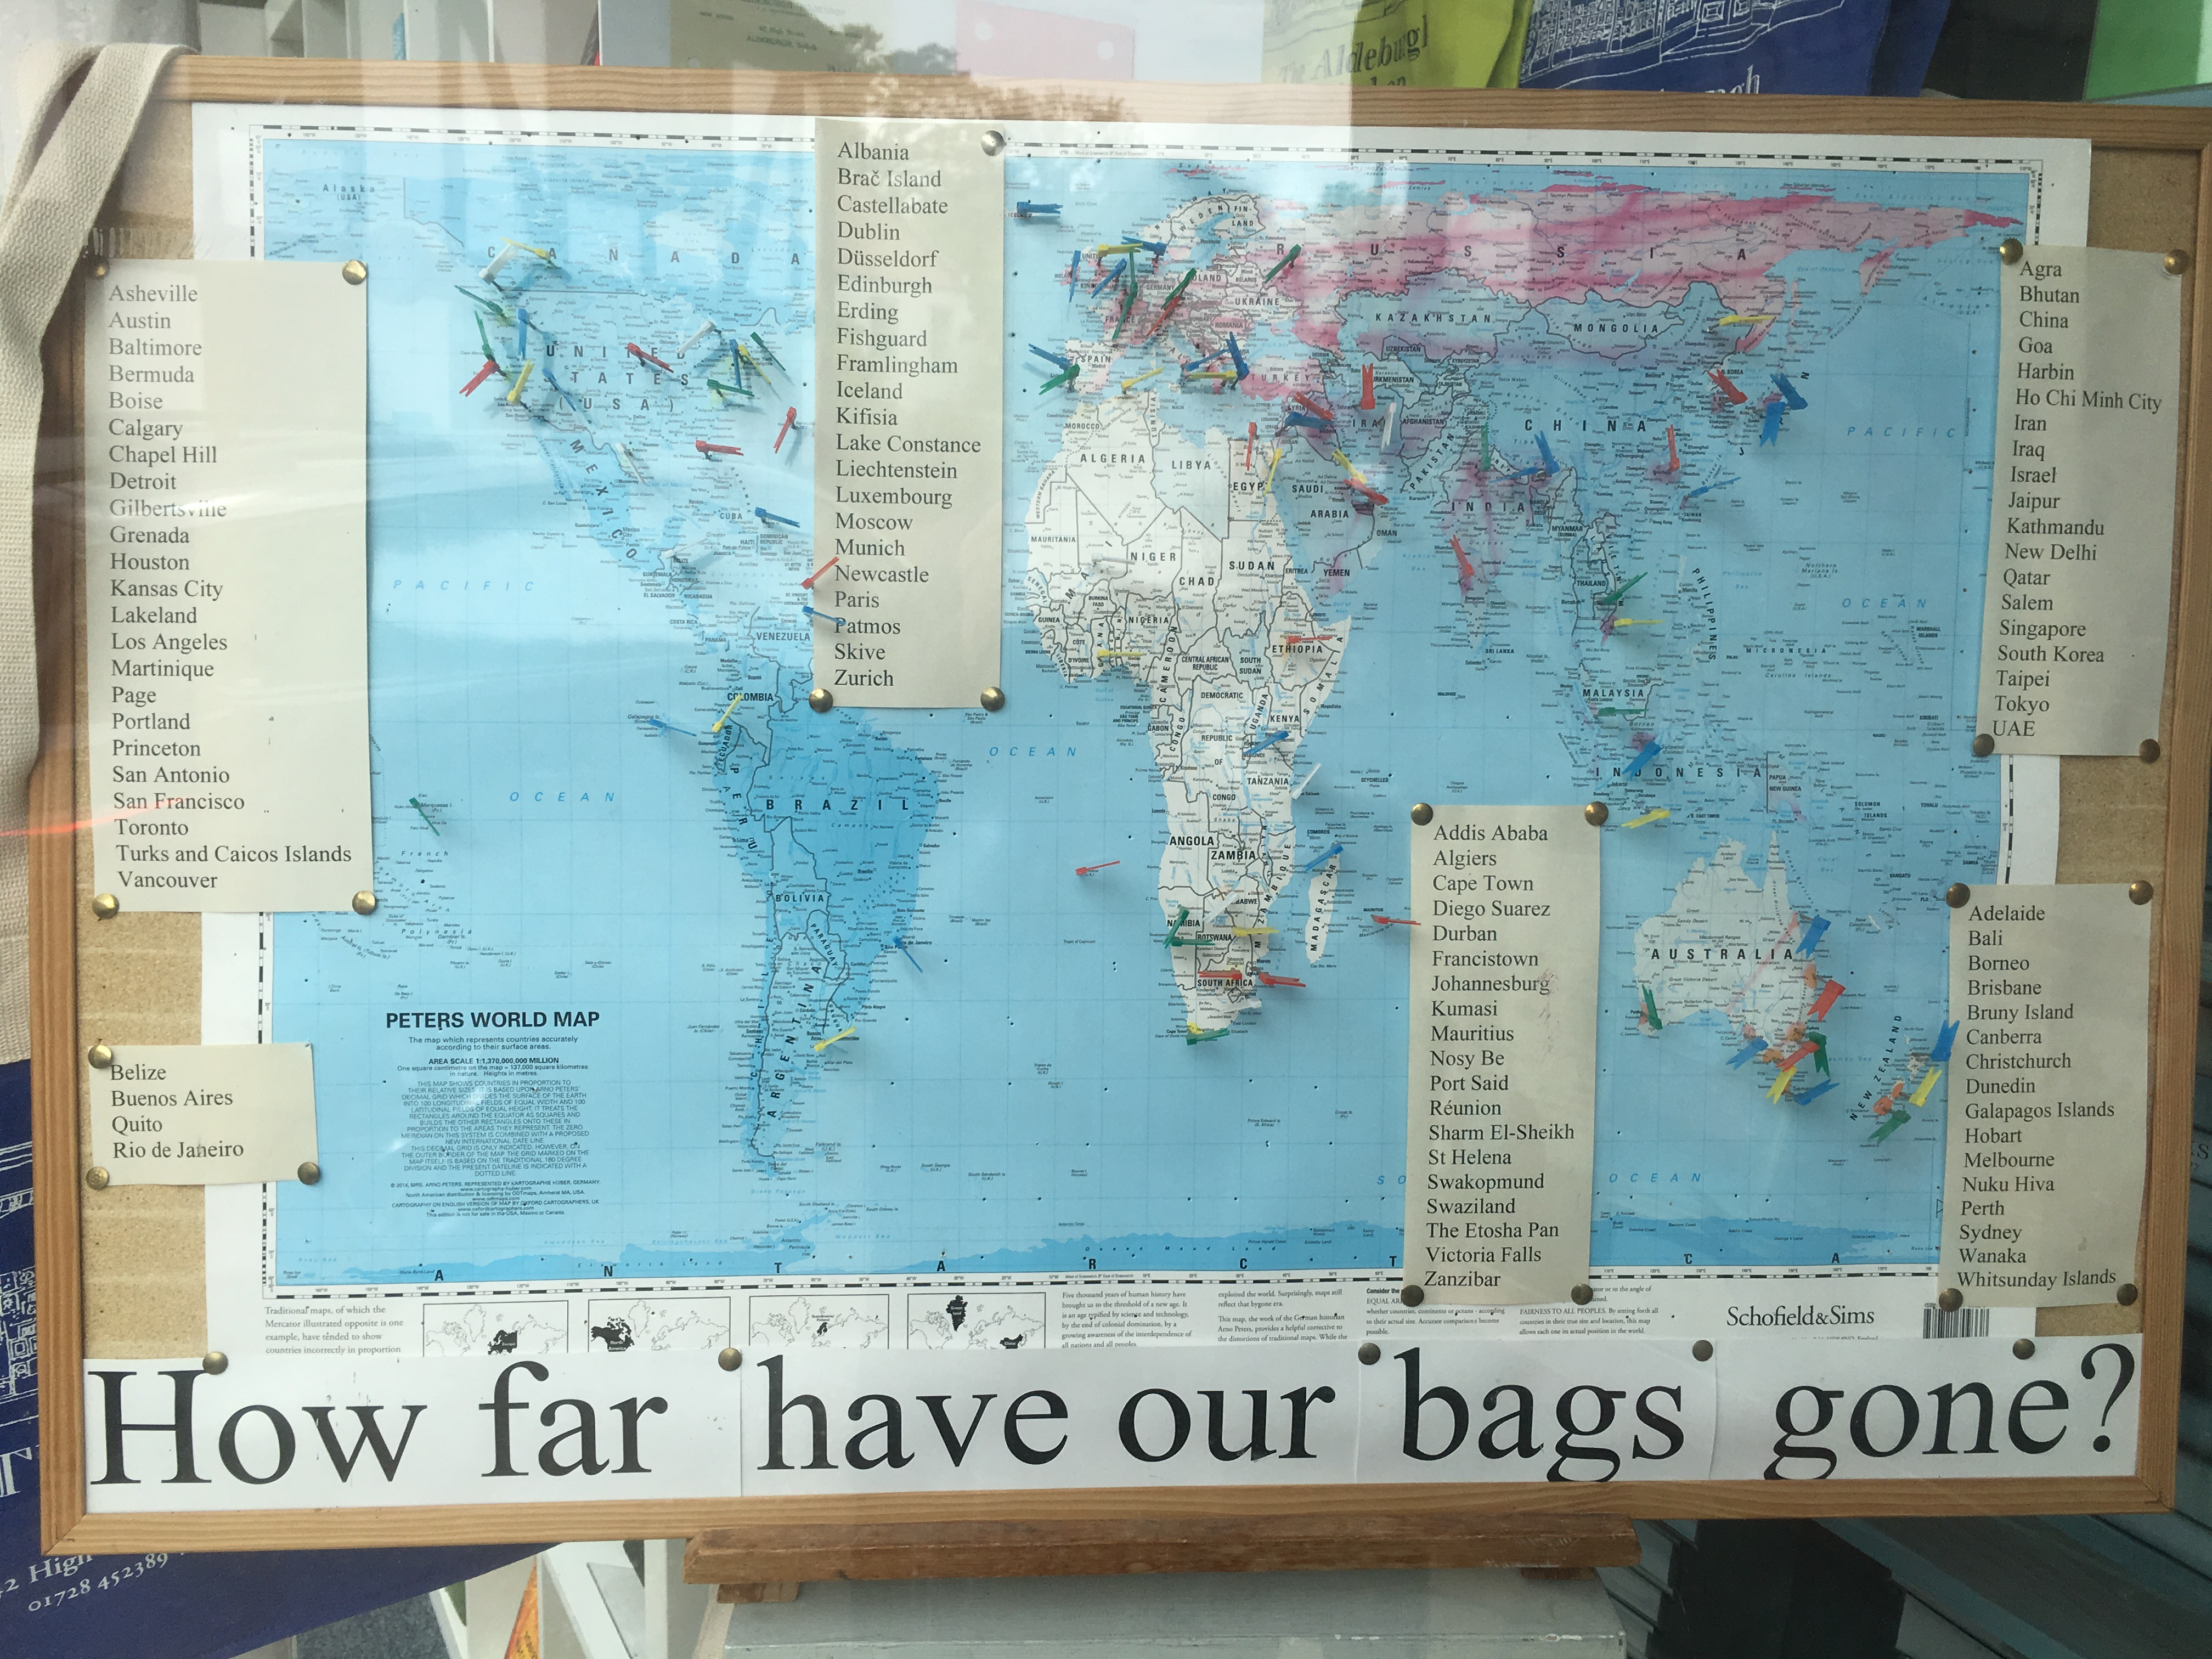 A map showing how far Aldeburgh bookshop's tote bags have gone